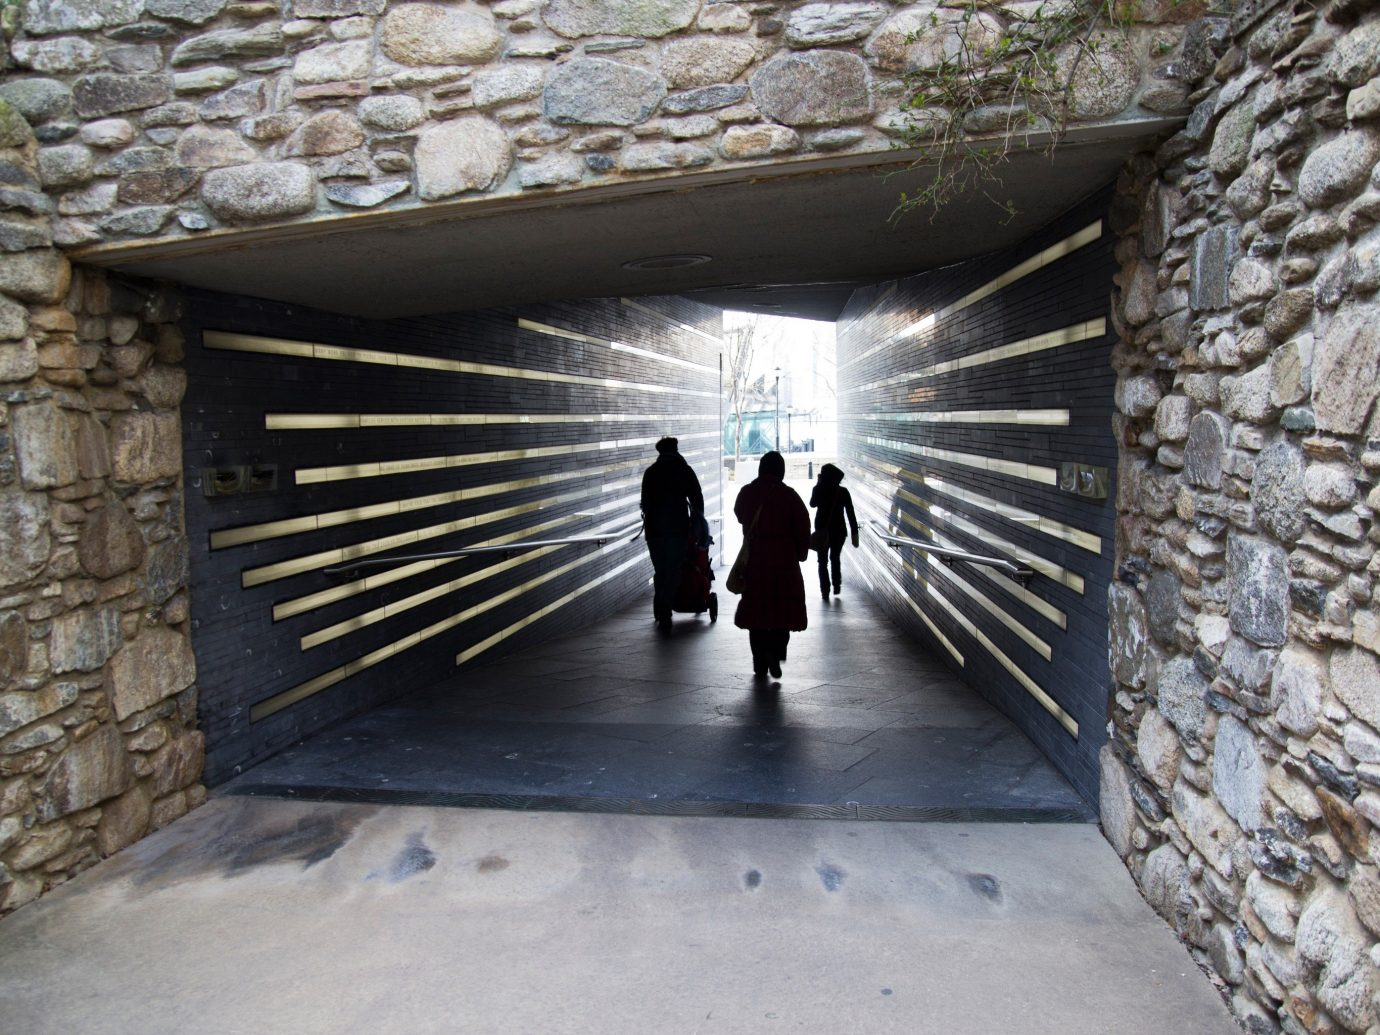 Trip Ideas building stone outdoor ground wall tunnel subway infrastructure alley concrete cement